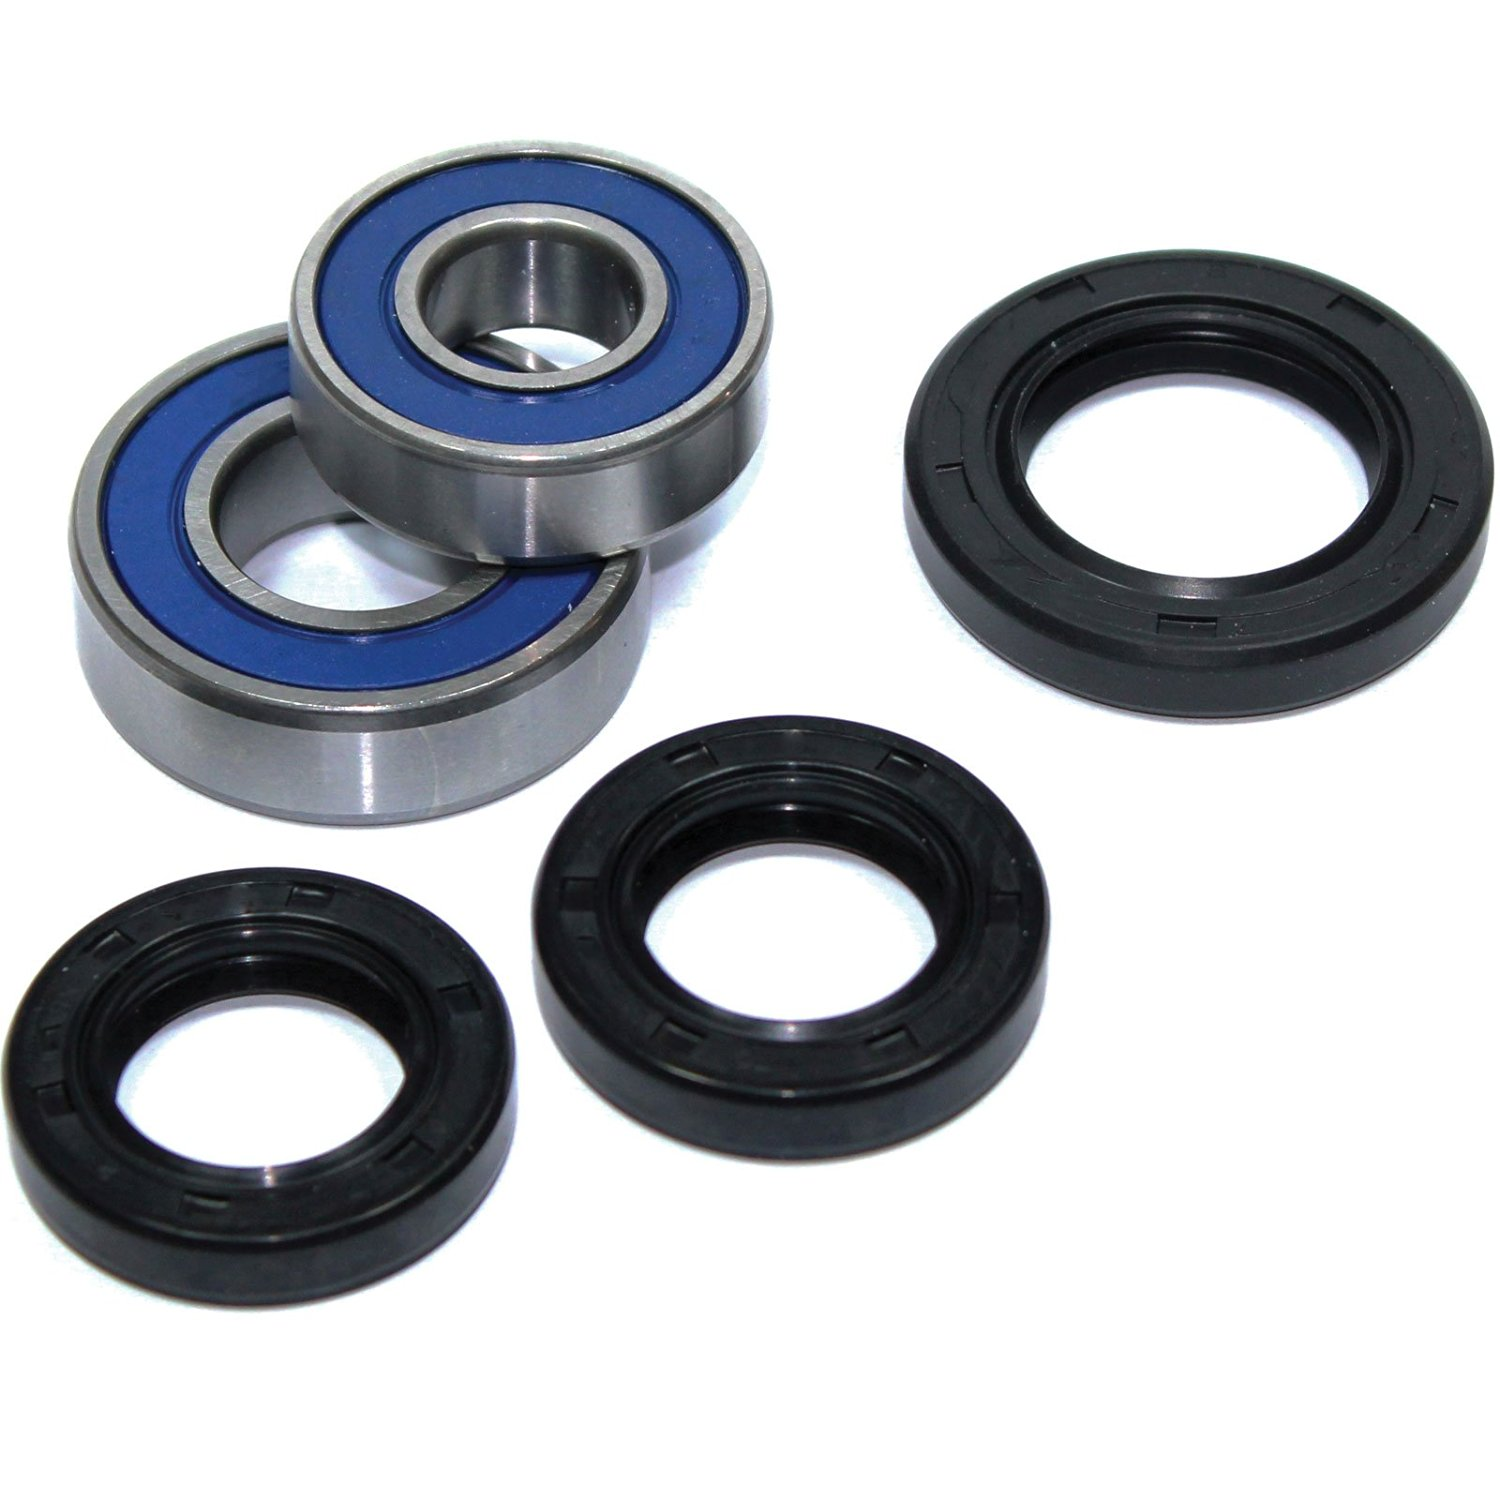 Caltric FRONT WHEEL BALL BEARINGS & SEALS KIT FITS SUZUKI LTZ400 LTZ-400 LTZ400Z LTZ400-Z QUADSPORT 400 2003-2009 2012